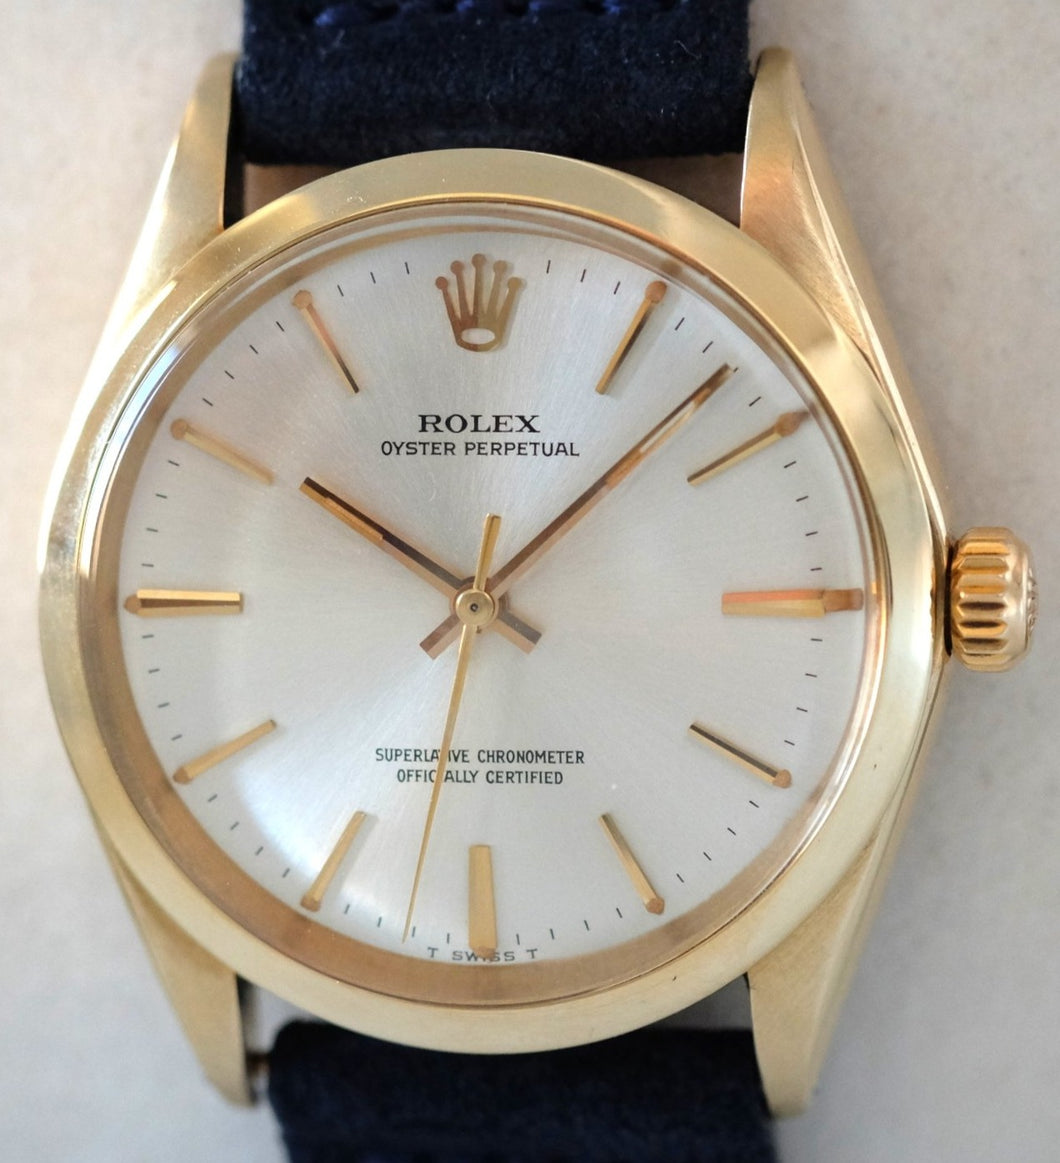 Rolex Oyster Perpetual in Yellow Gold Ref. 1012